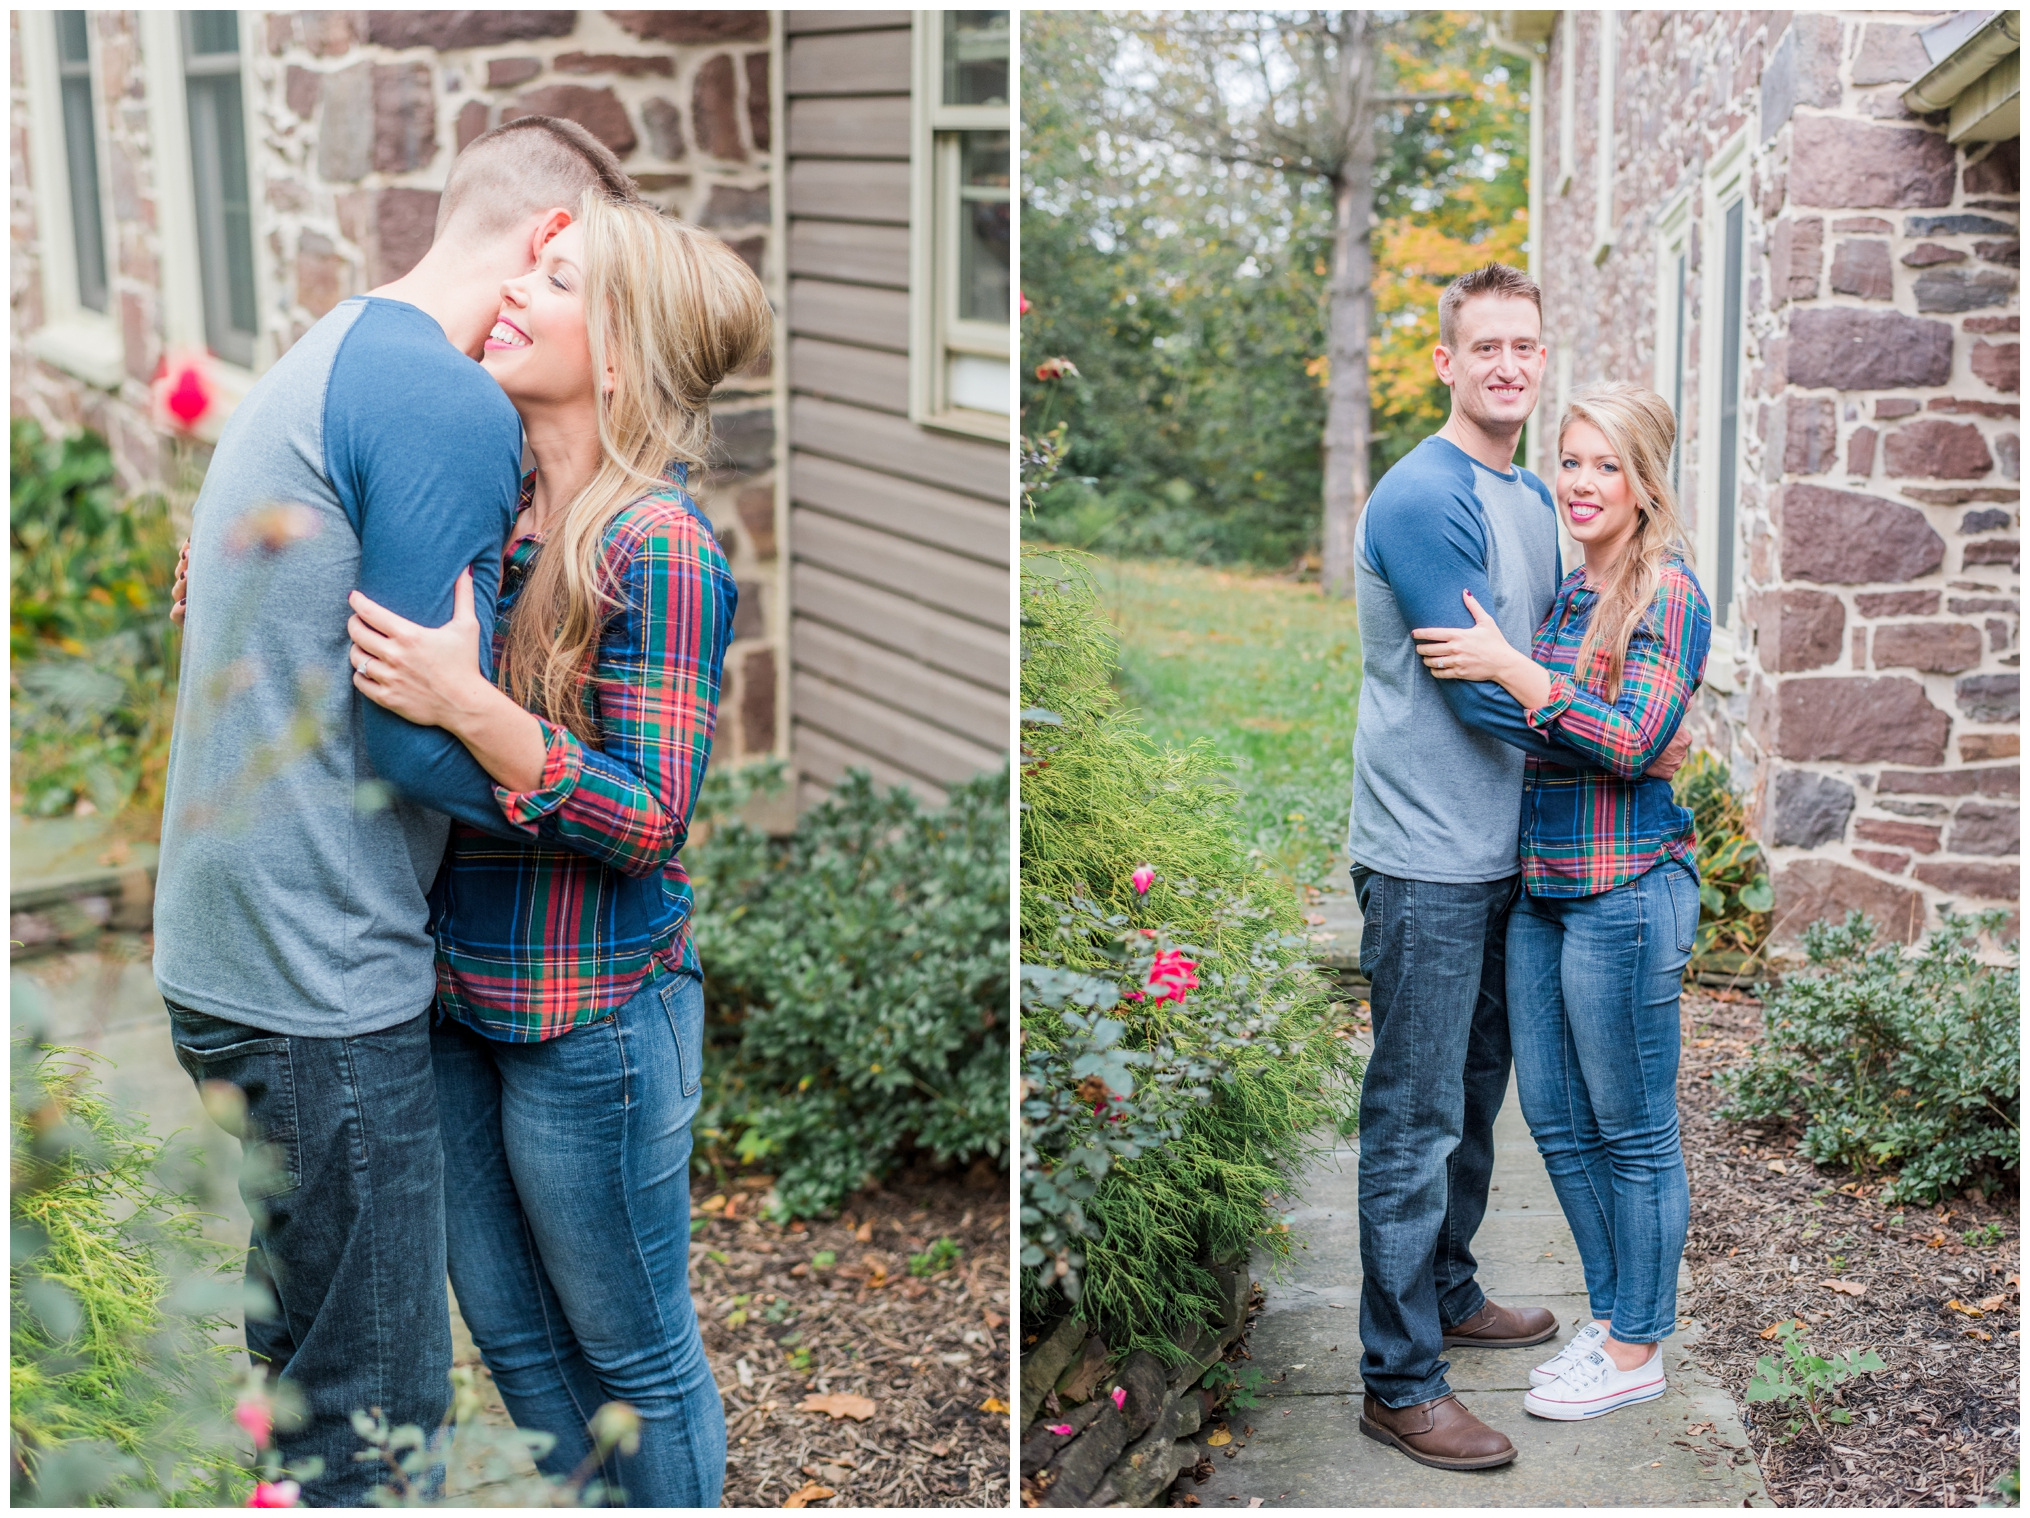 Fall Engagement Session Collegeville, PA - Krista Brackin Photography_0022.jpg